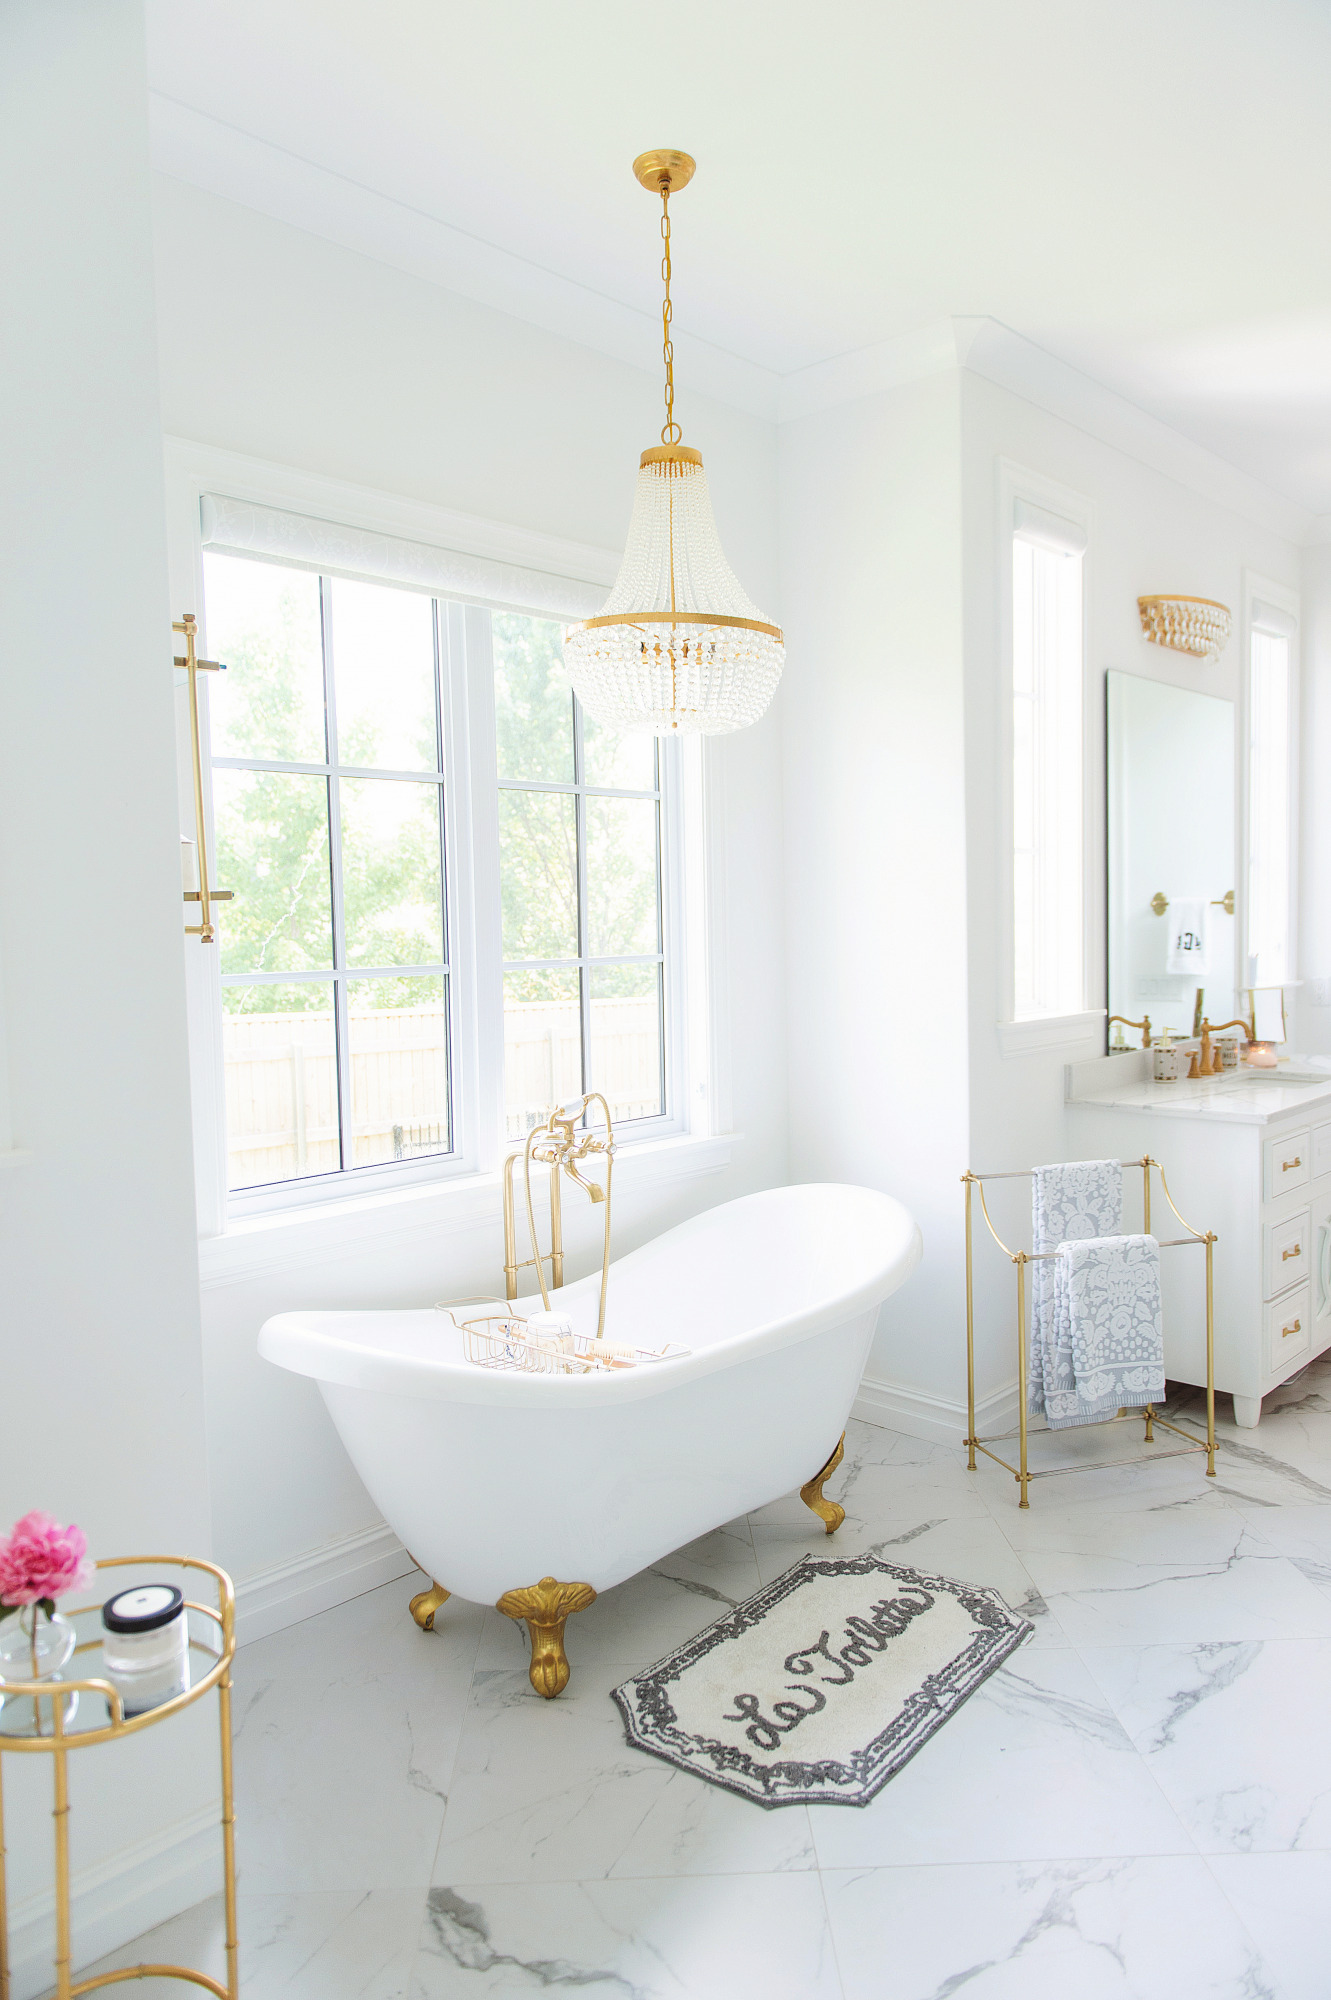 Blog Design by popular US lifestyle blog, The Sweetest Thing: image of a bathroom with a white and gold claw foot tub, chandelier, and white vanity.